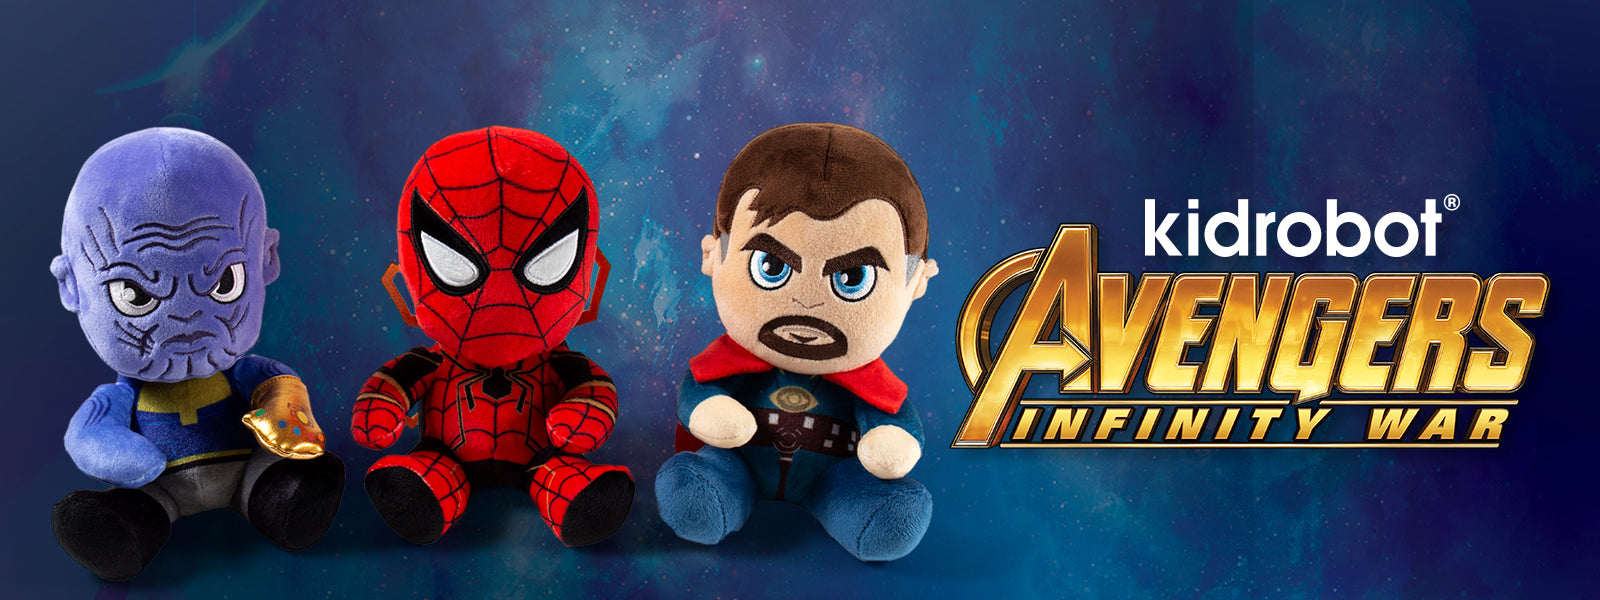 Kidrobot x Marvel Toys: Avengers Infinity War Plush, Captain Marvel, more - Kidrobot.com